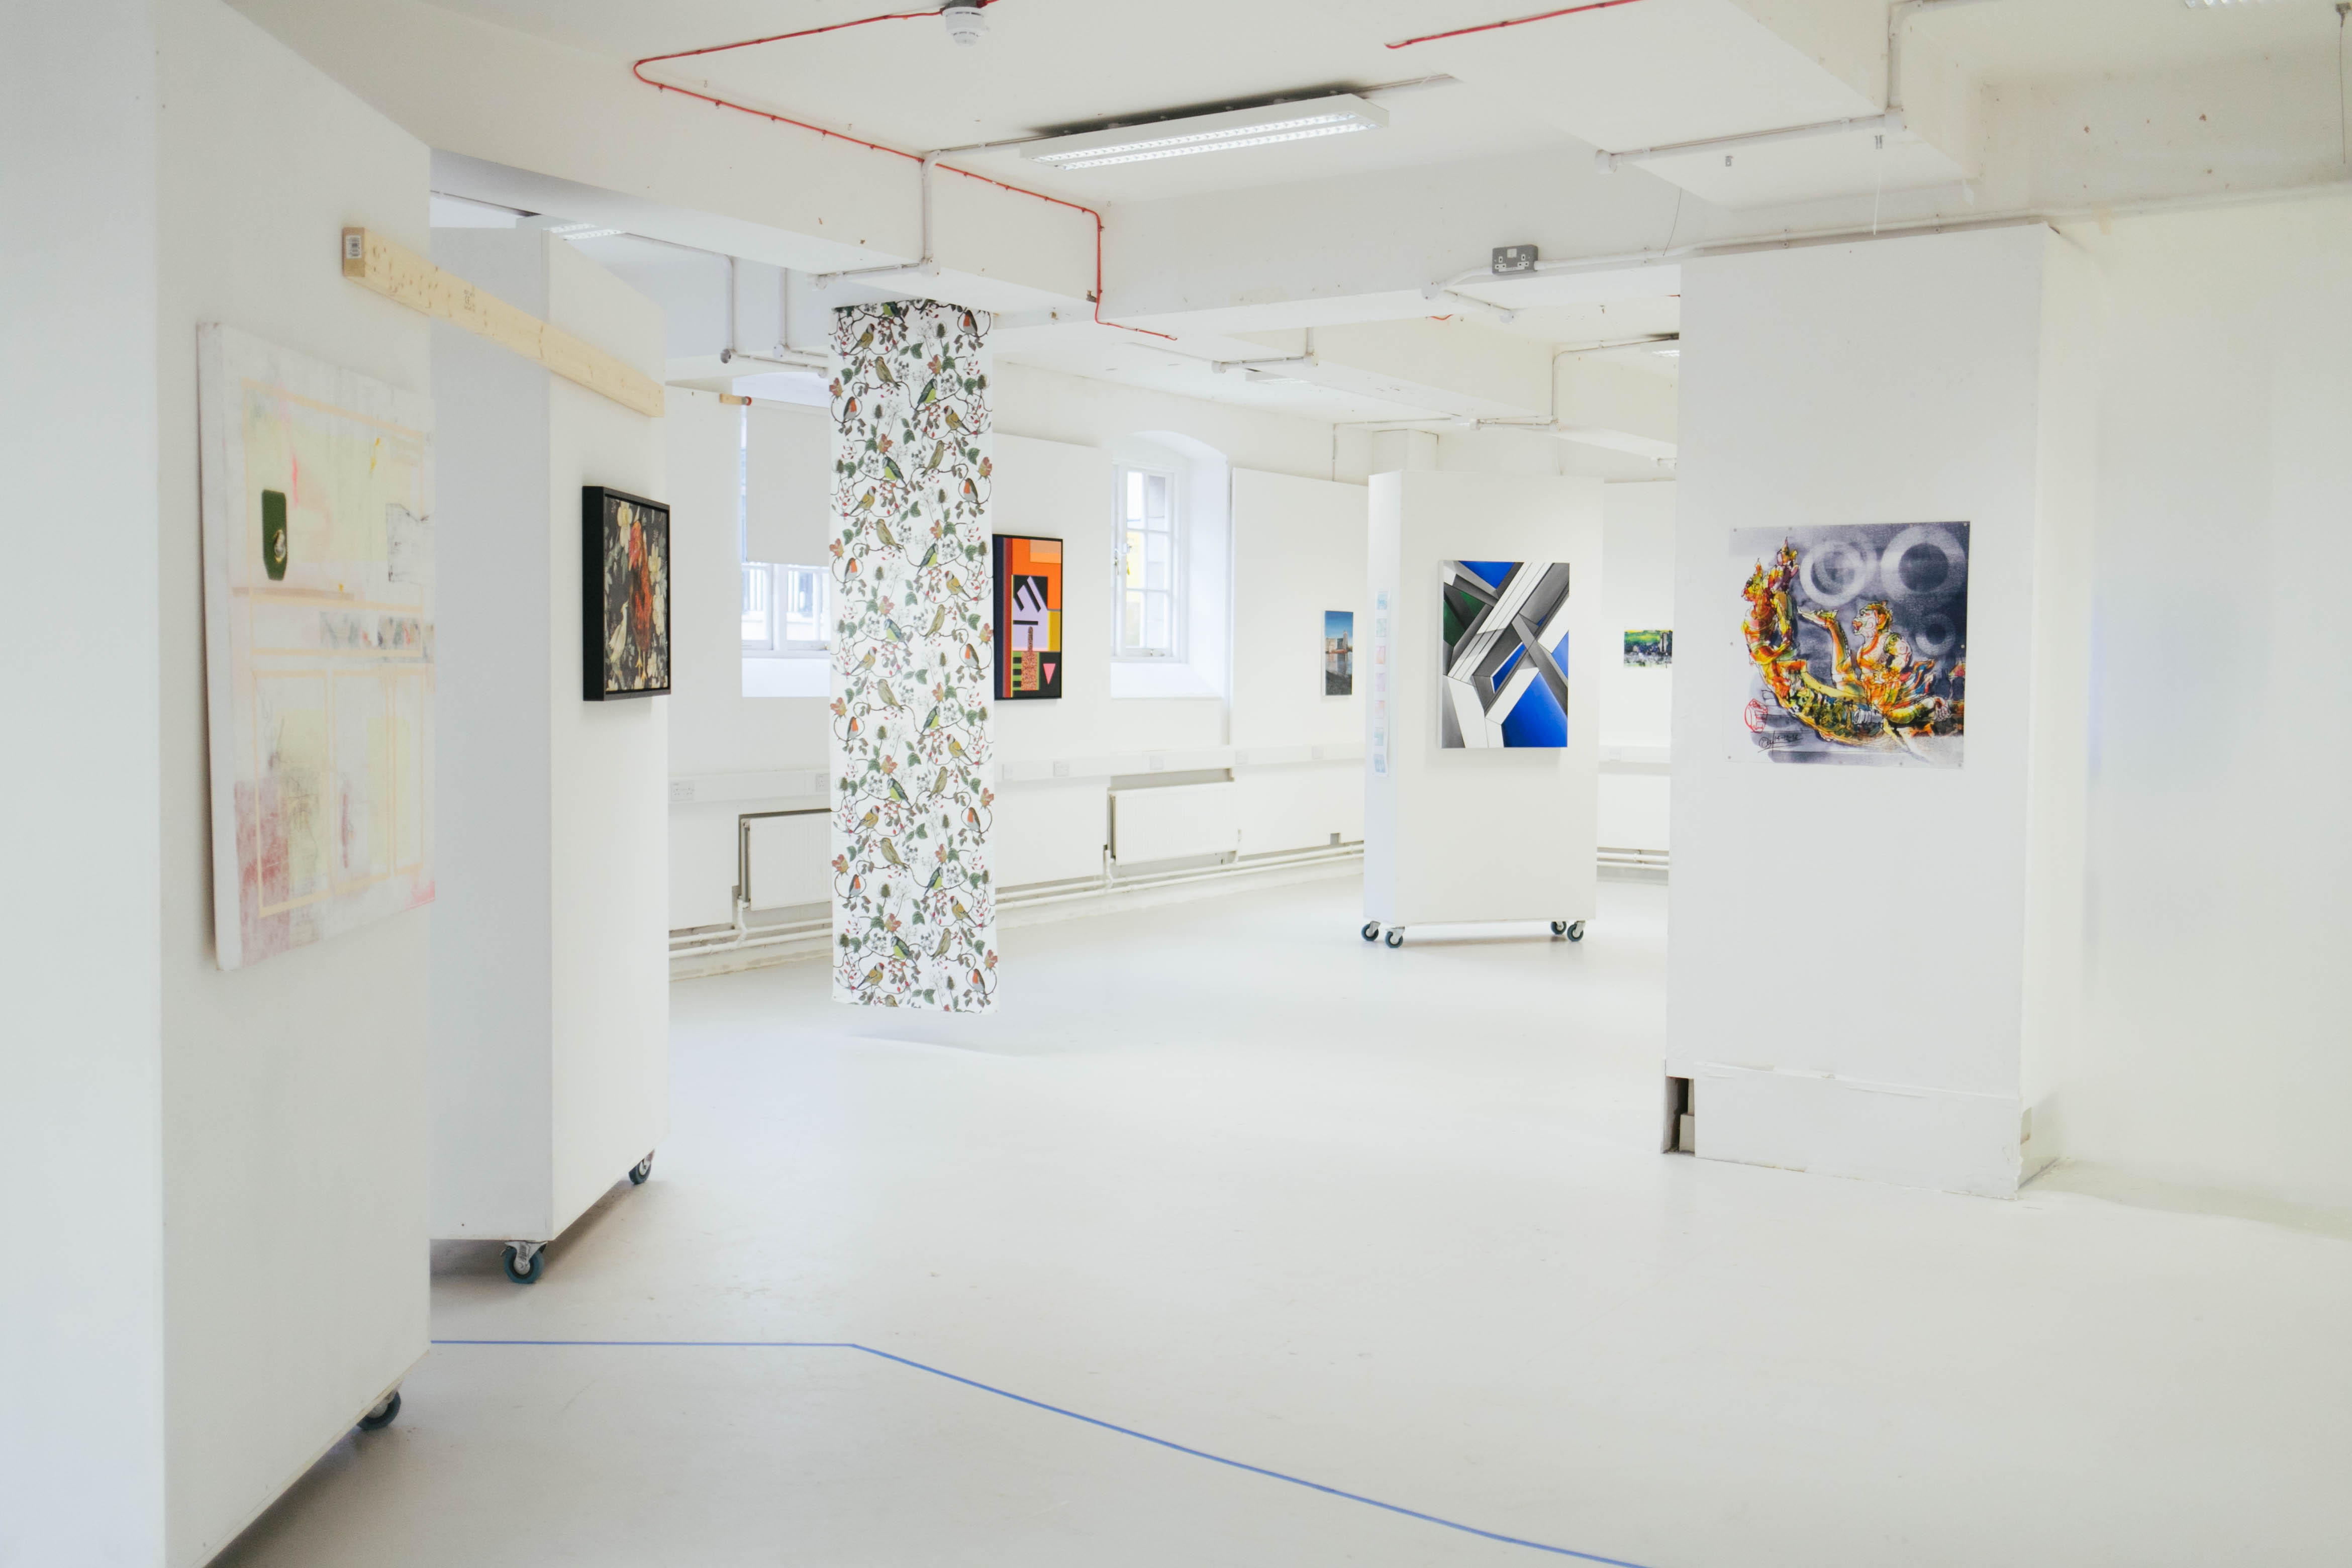 A photo of an empty art exhibit with art pieces mounted across the room